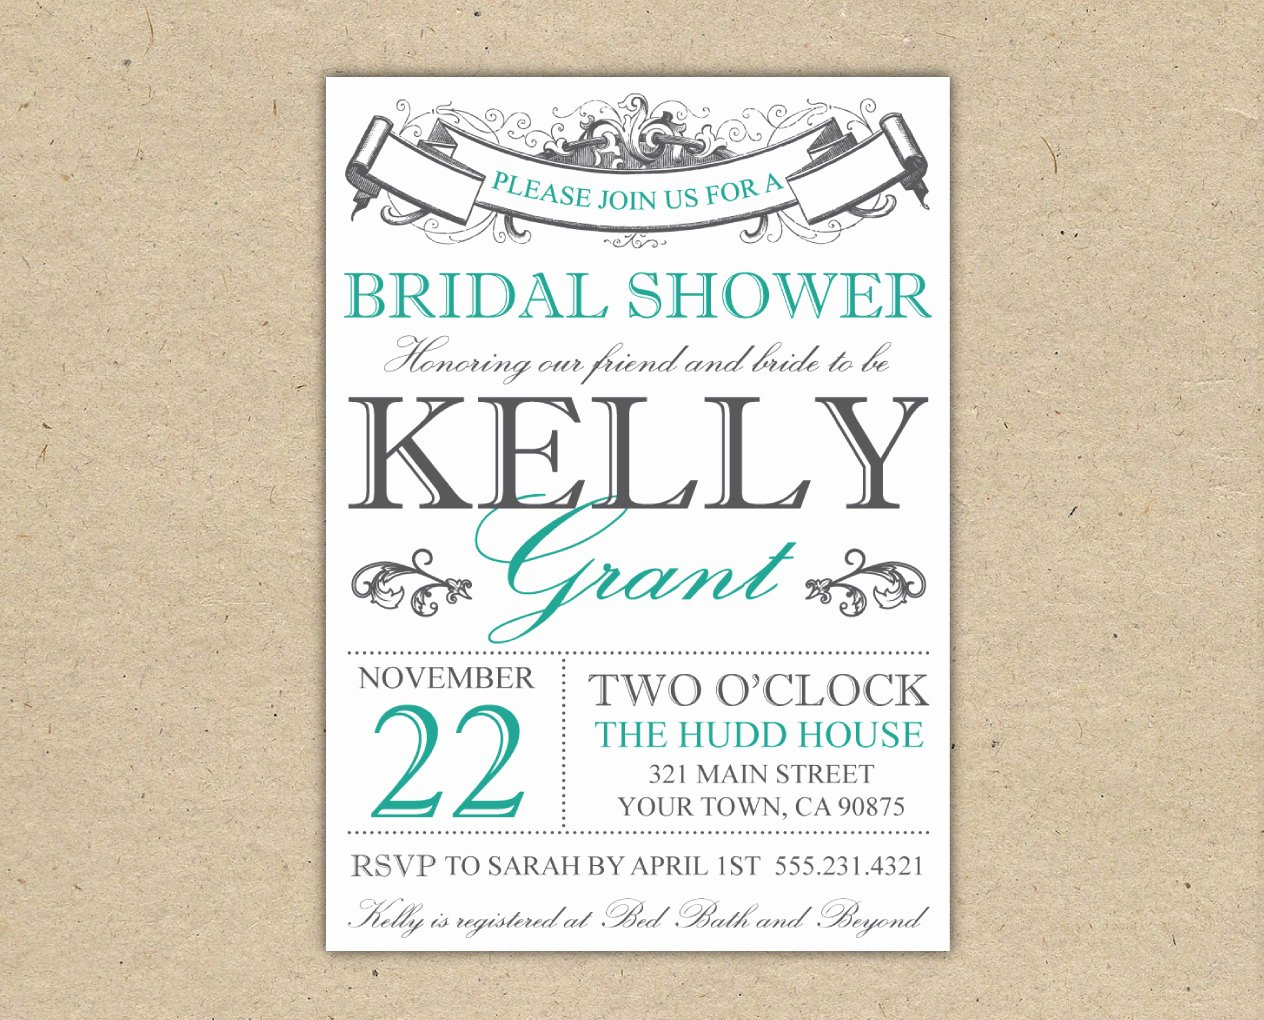 Bridal Shower Invitations Template Best Of Bridal Shower Invitation Templates